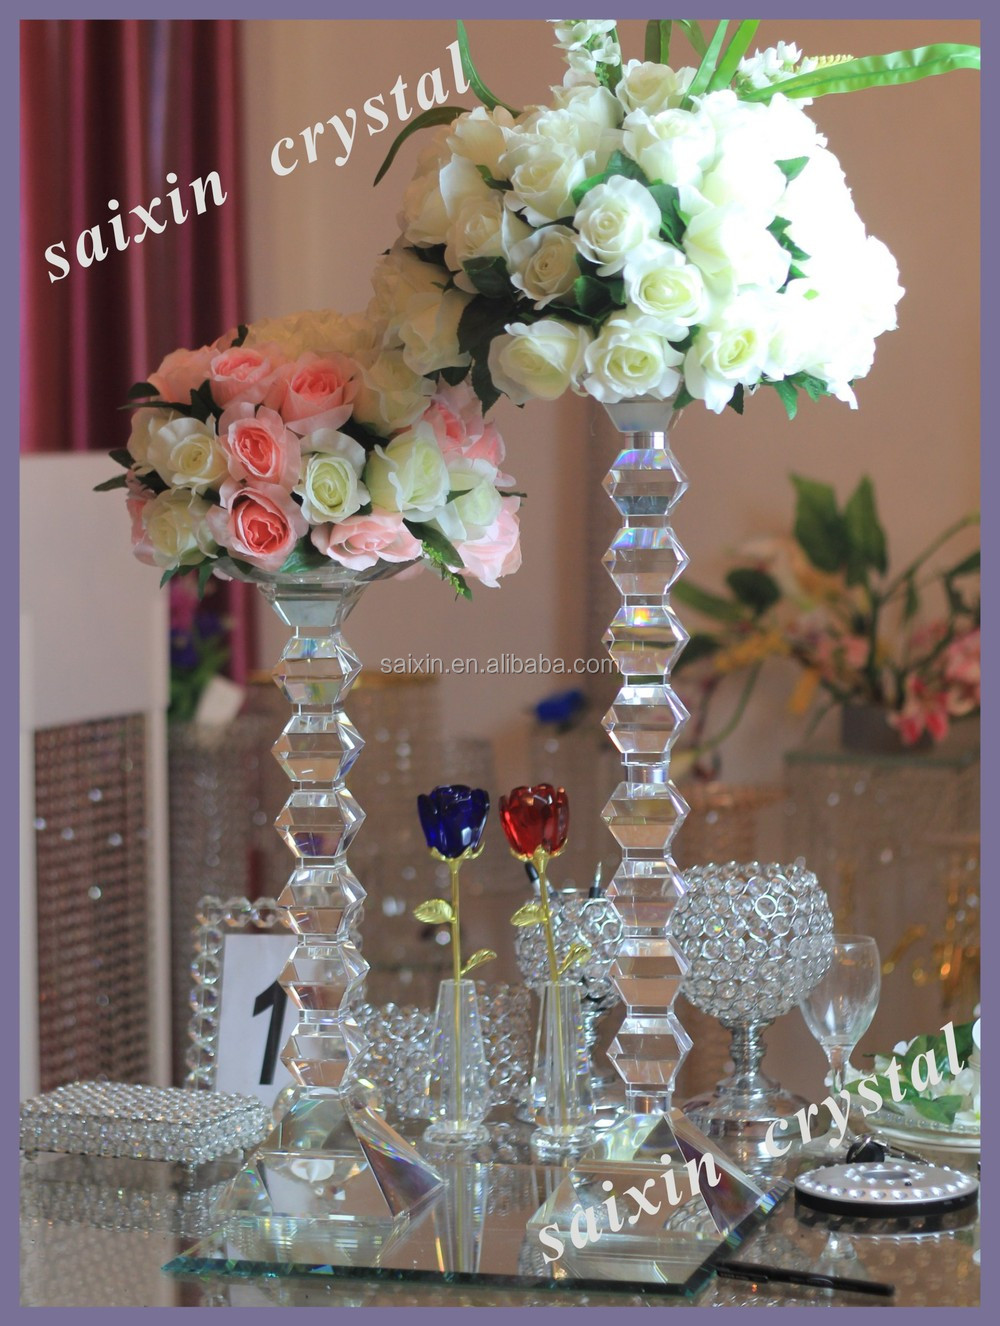 Shiny crystal wedding flower stands for wedding decoration, View ...